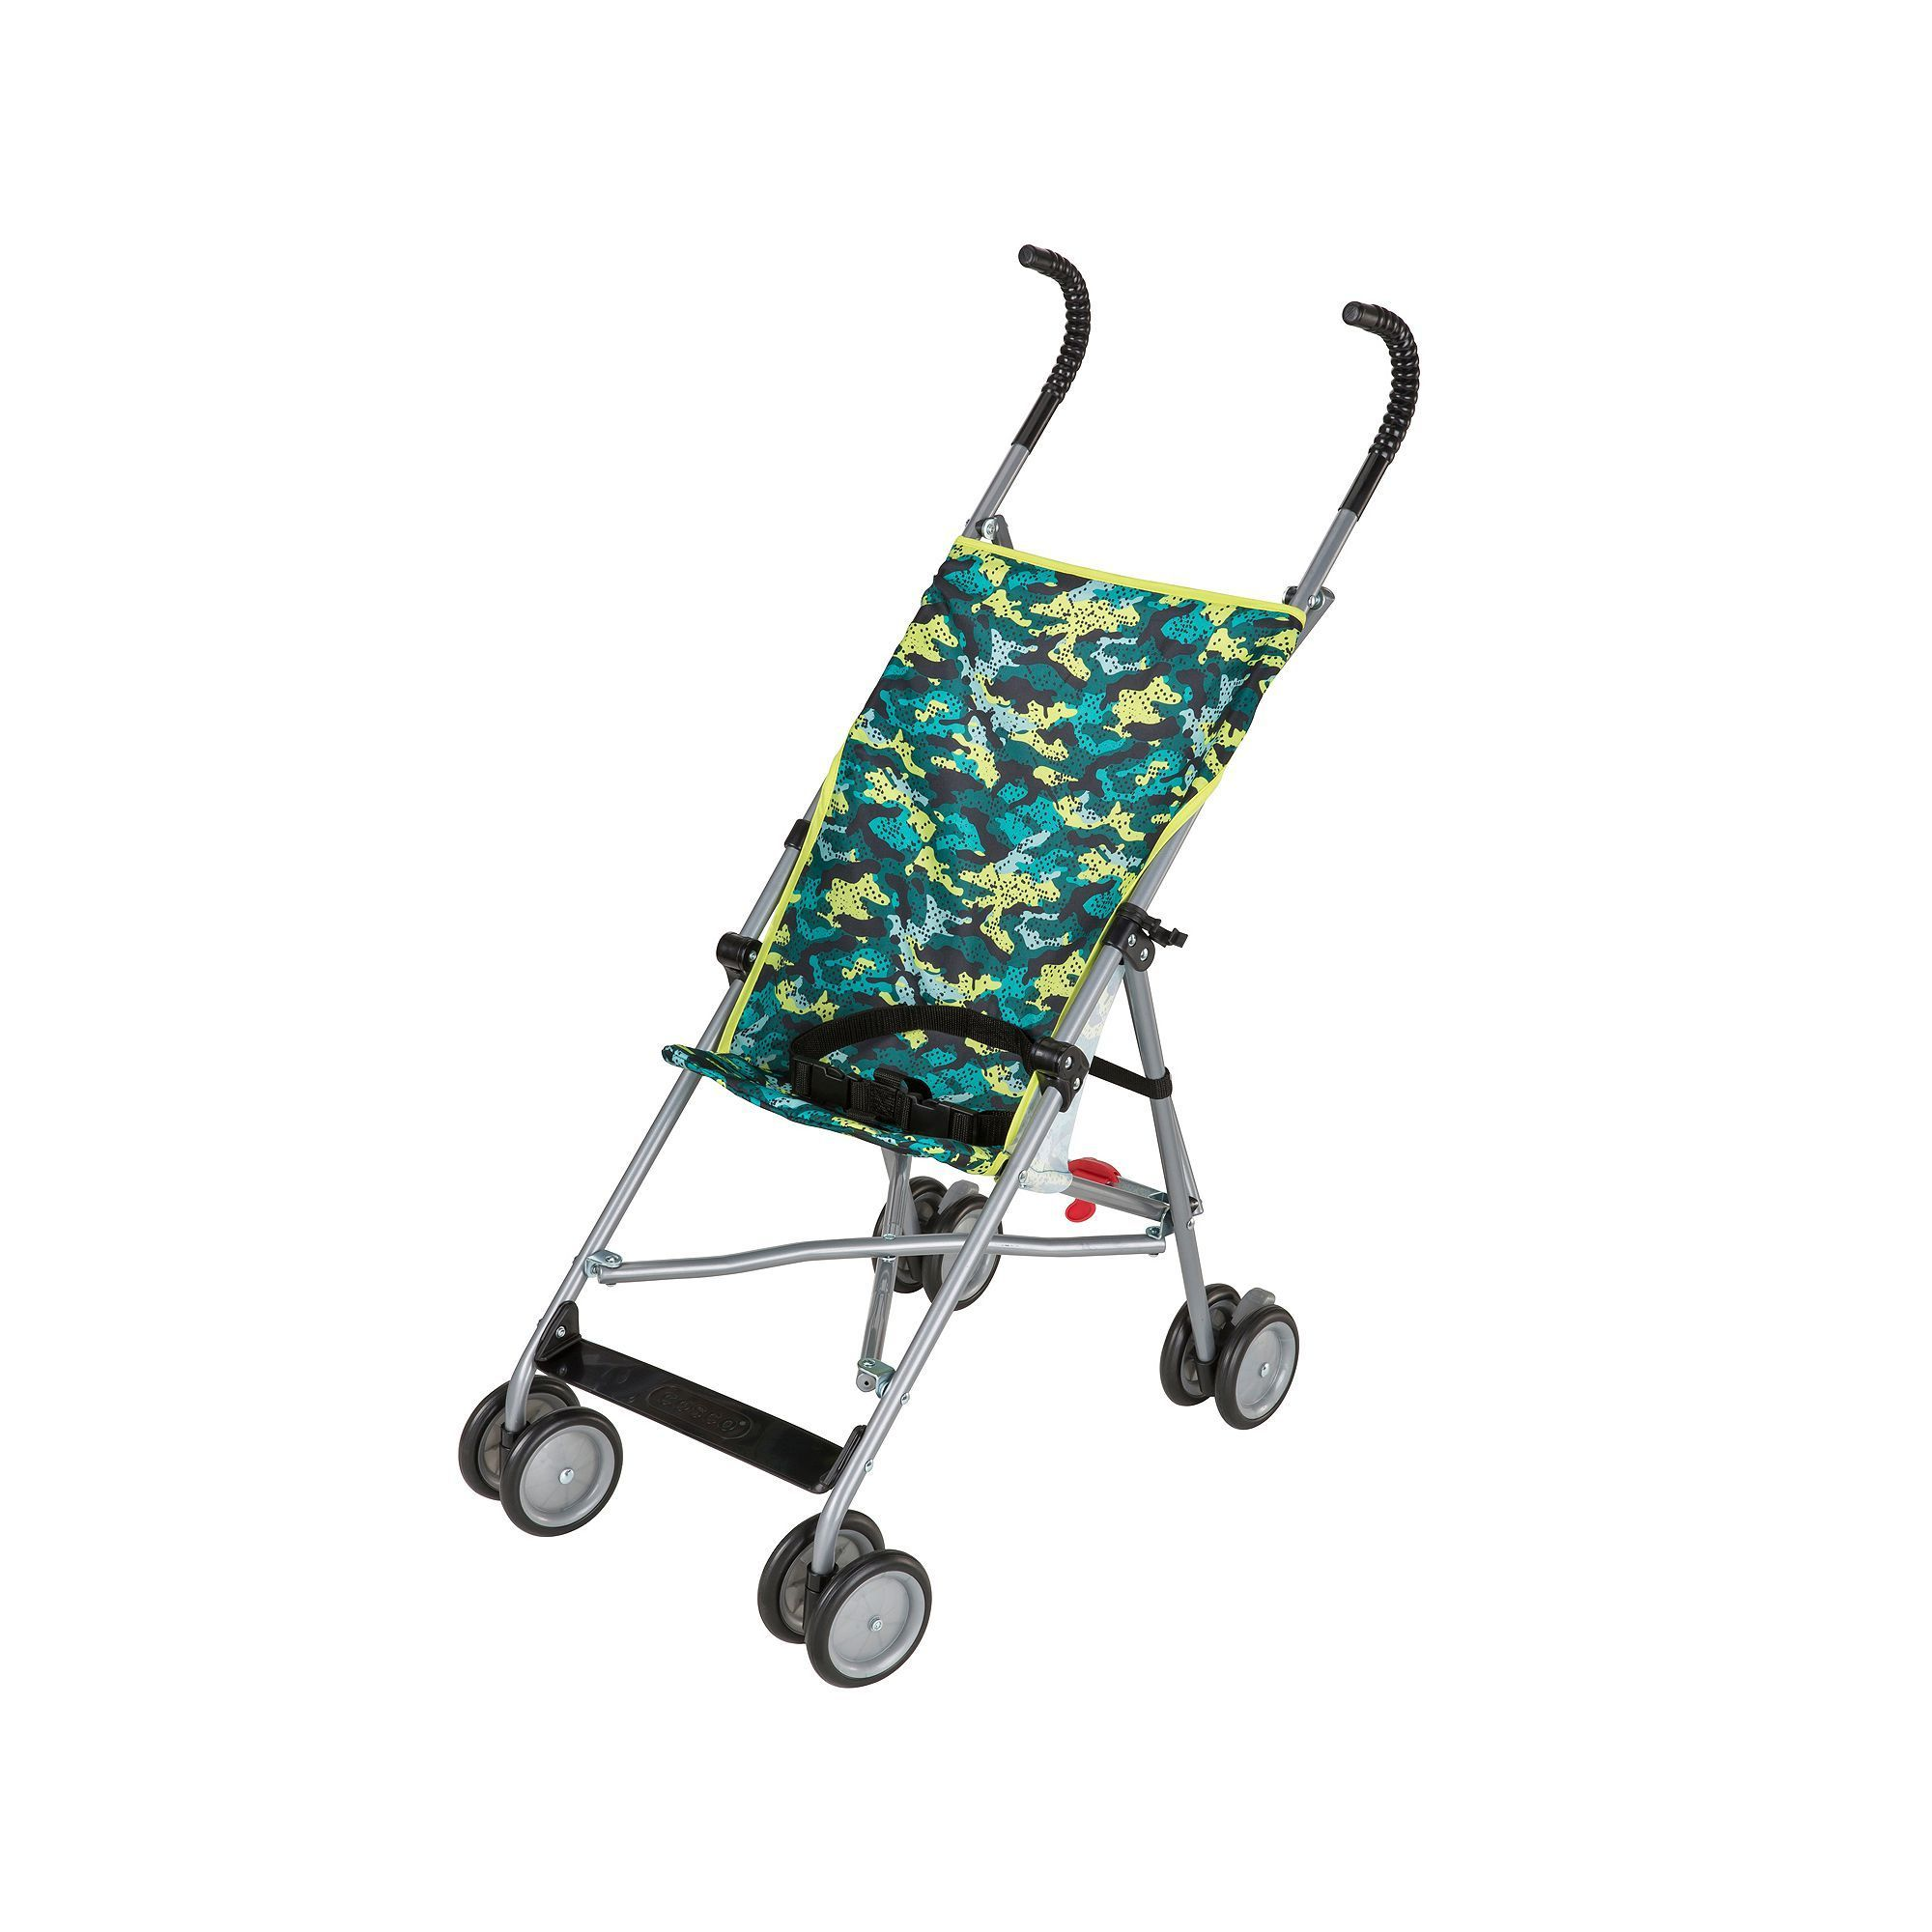 50+ Cosco umbrella stroller with canopy instructions info